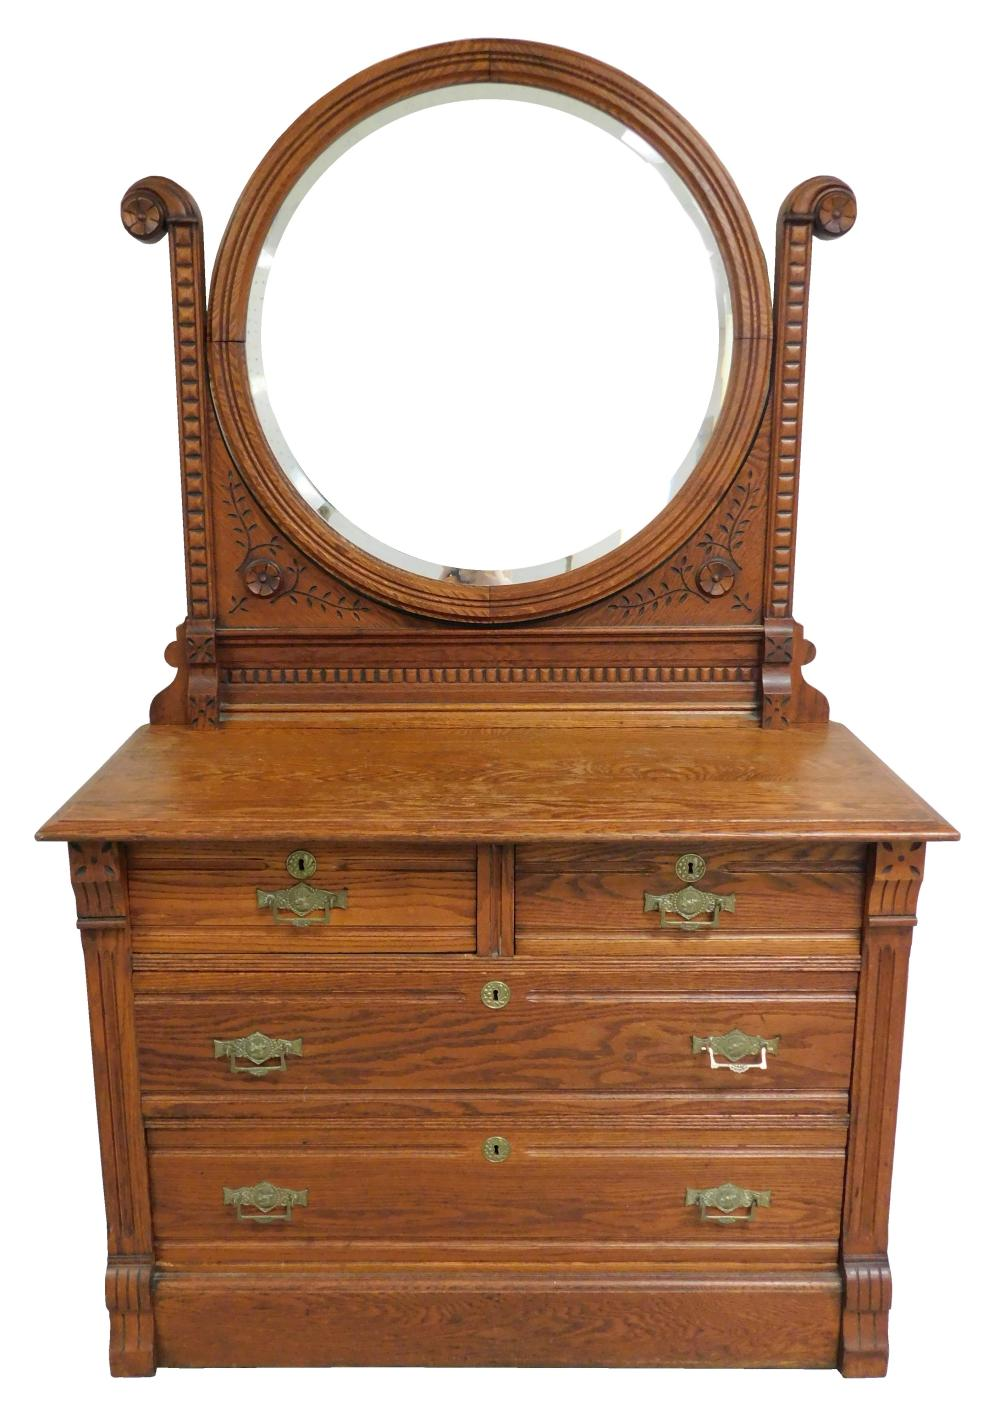 Bed stead and bureau, Eastlake, oak: bureau with round beveled mirror, two drawers over two, 71